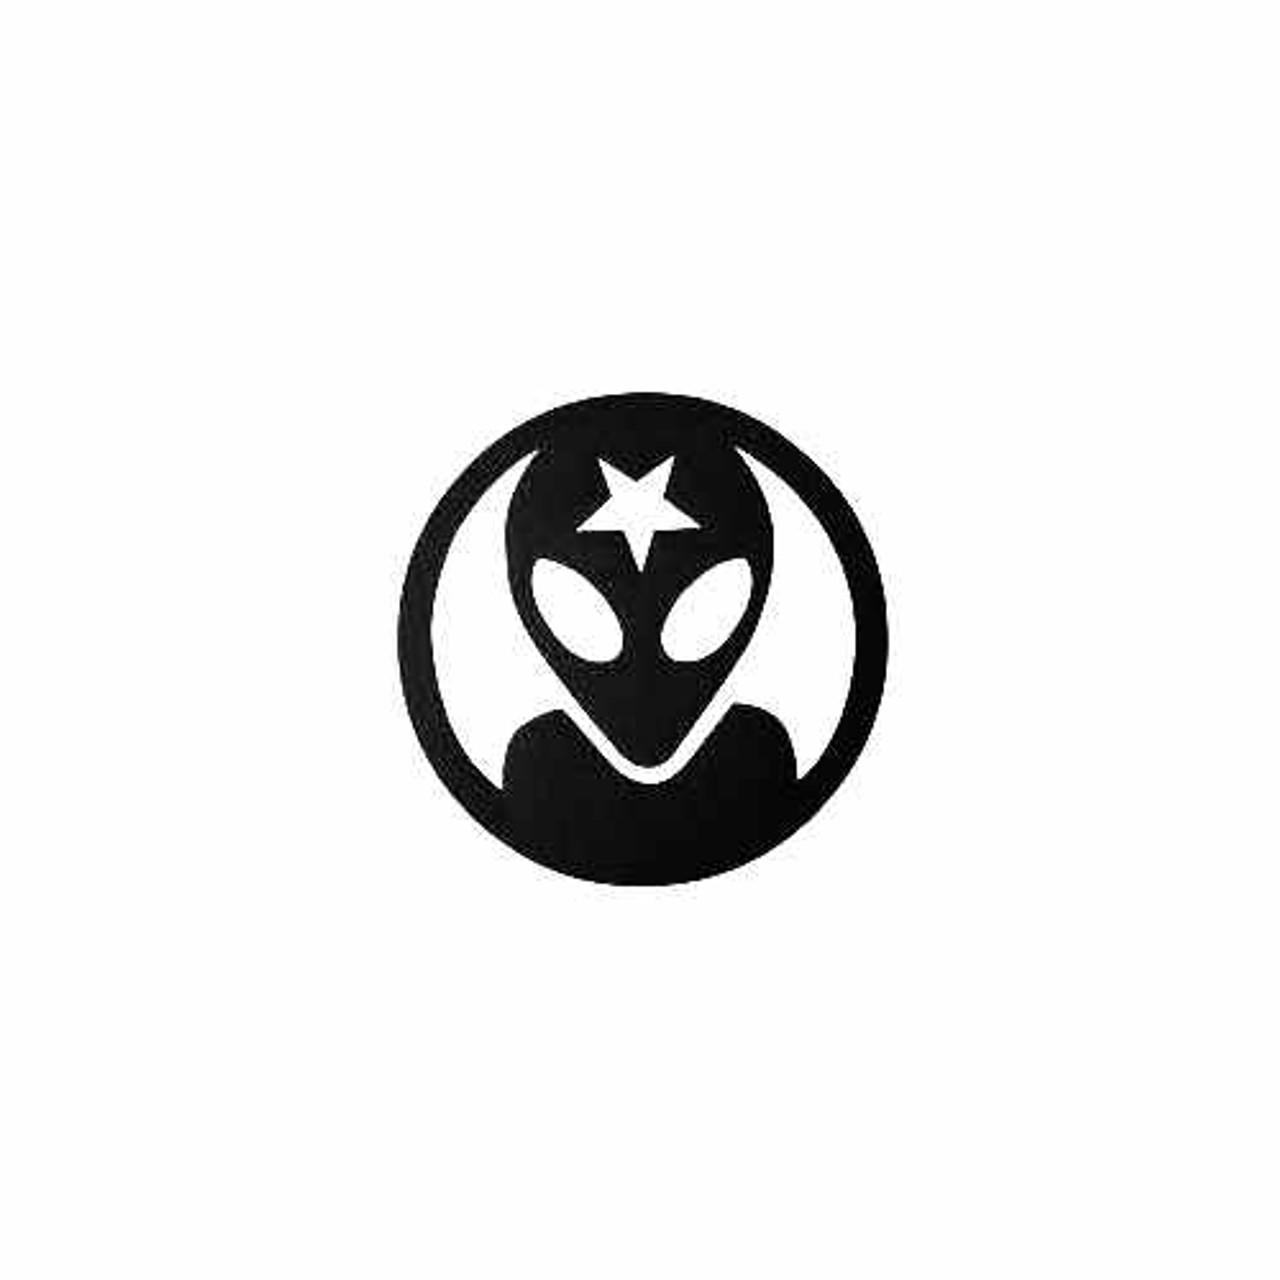 Alien Face Premium Die-Cut Decal Vinyl Sticker available in different size and colors.